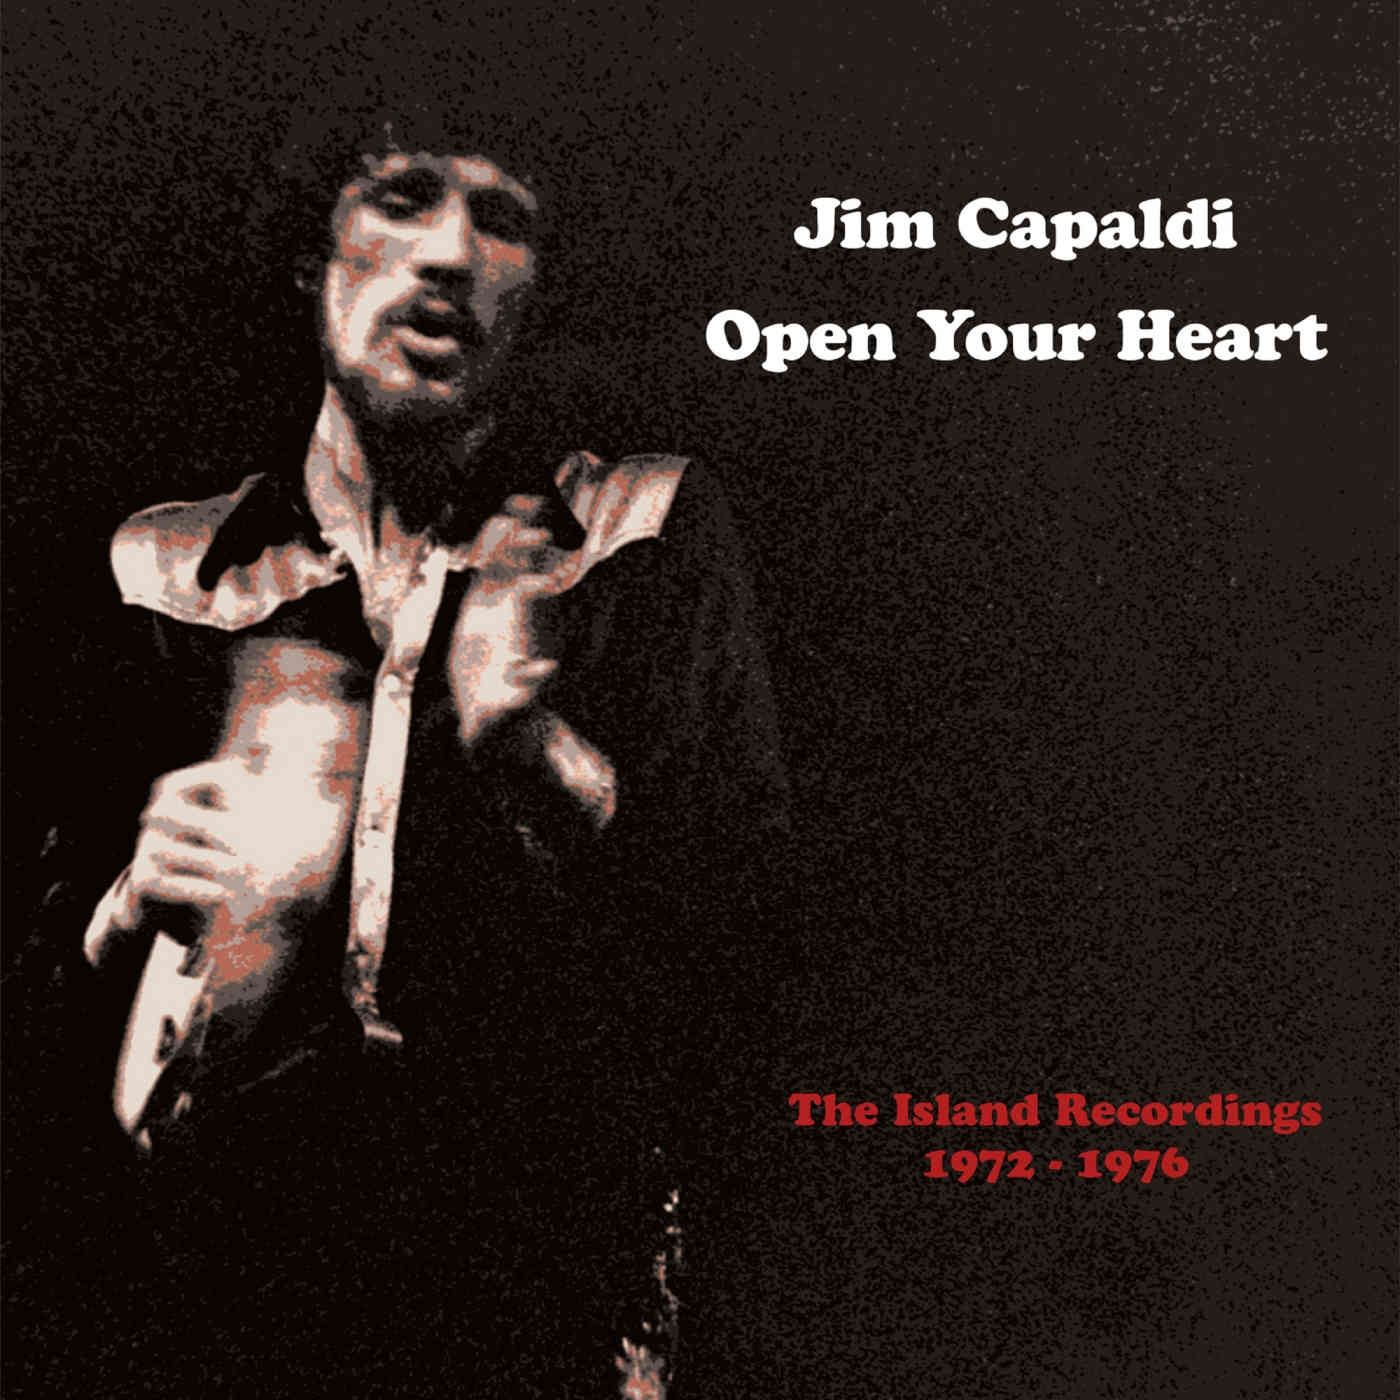 Open Your Heart – The Island Recordings 1972-19676, 3CD / 1 DVD Boxset